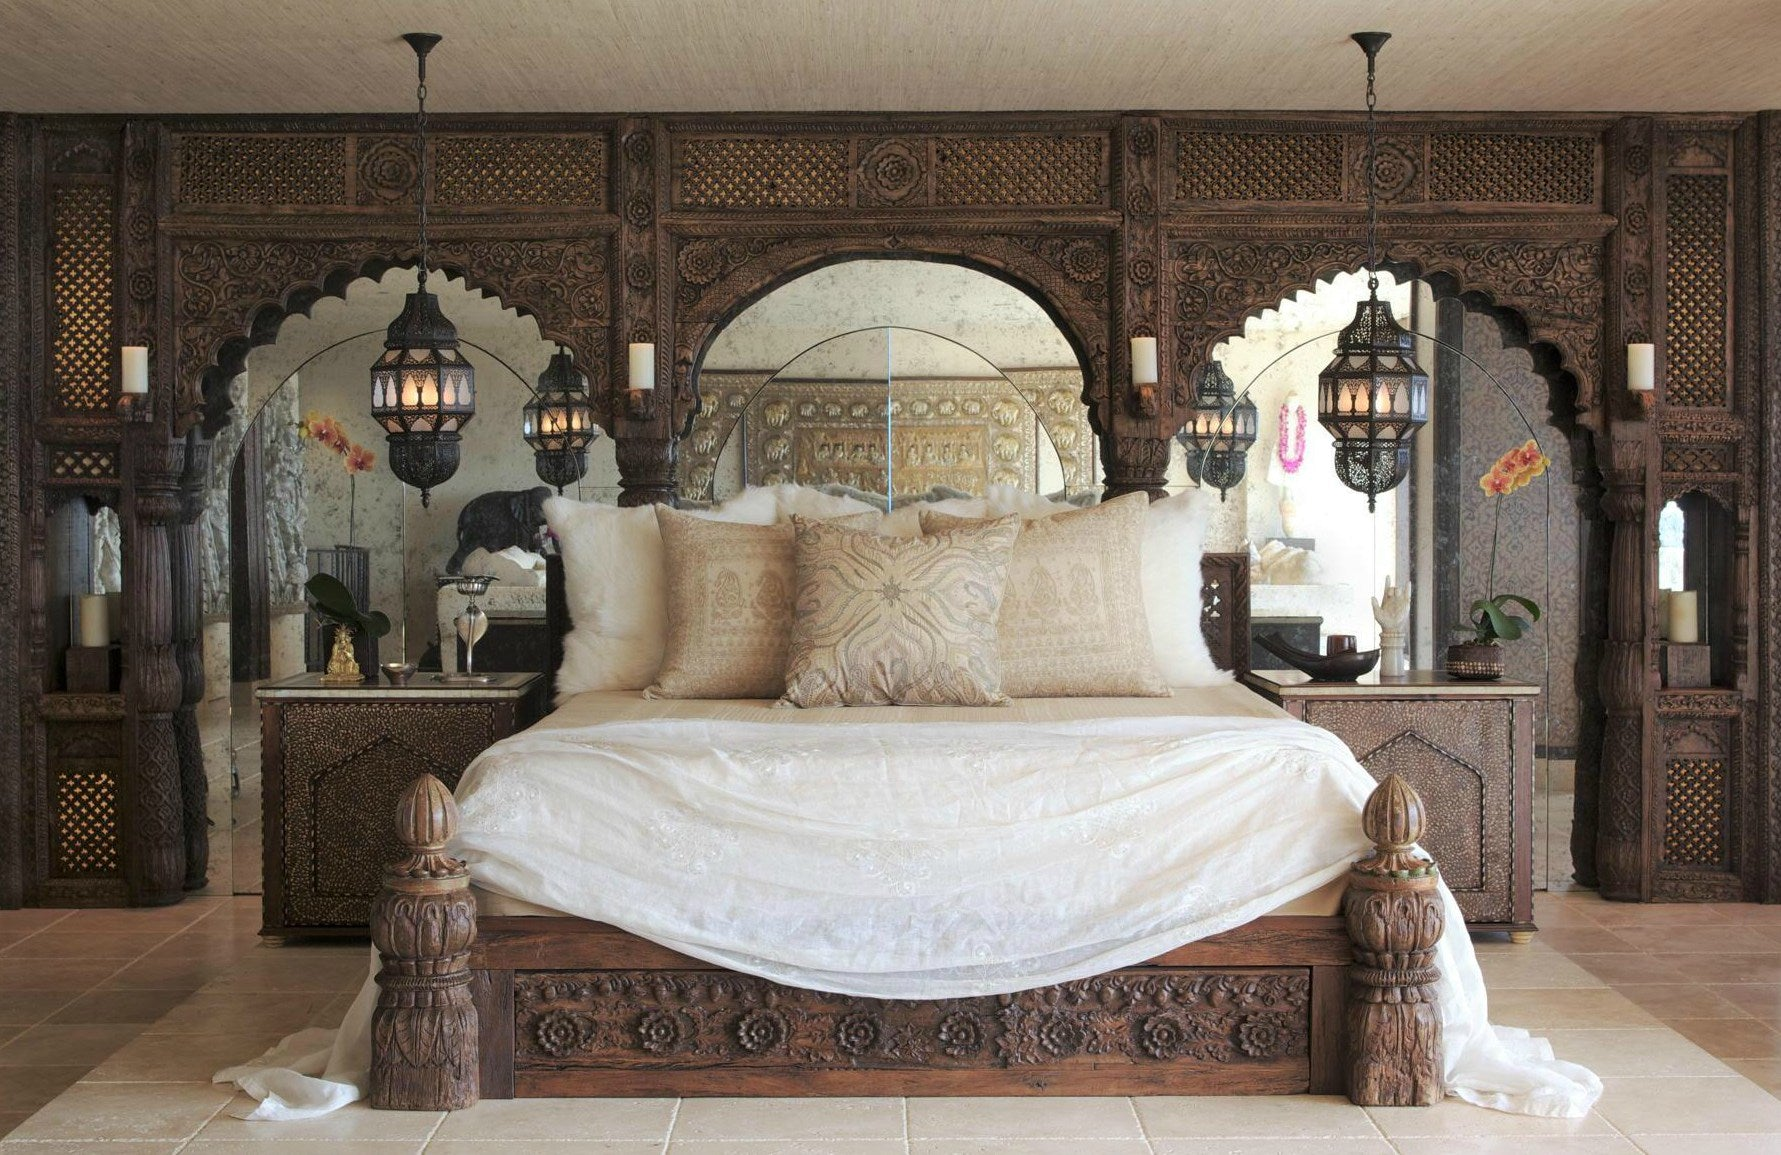 Famous Musicians Homes | Cher home; Interior design by Martyn Lawrence Bullard | LuxDeco.com